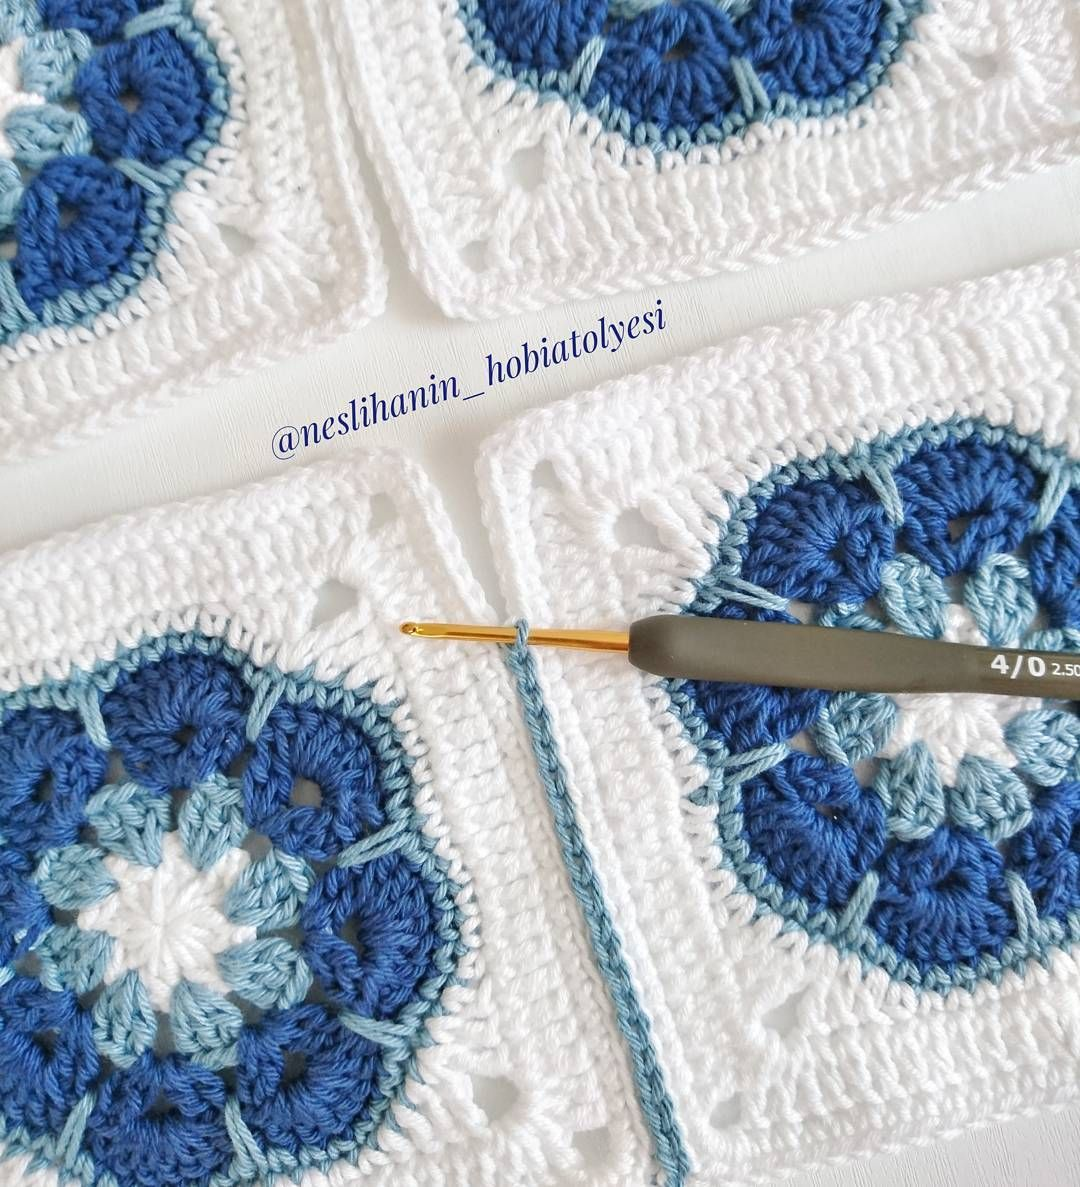 Pin de Genesis Paz en Crocheting | Pinterest | Cobija y Ganchillo